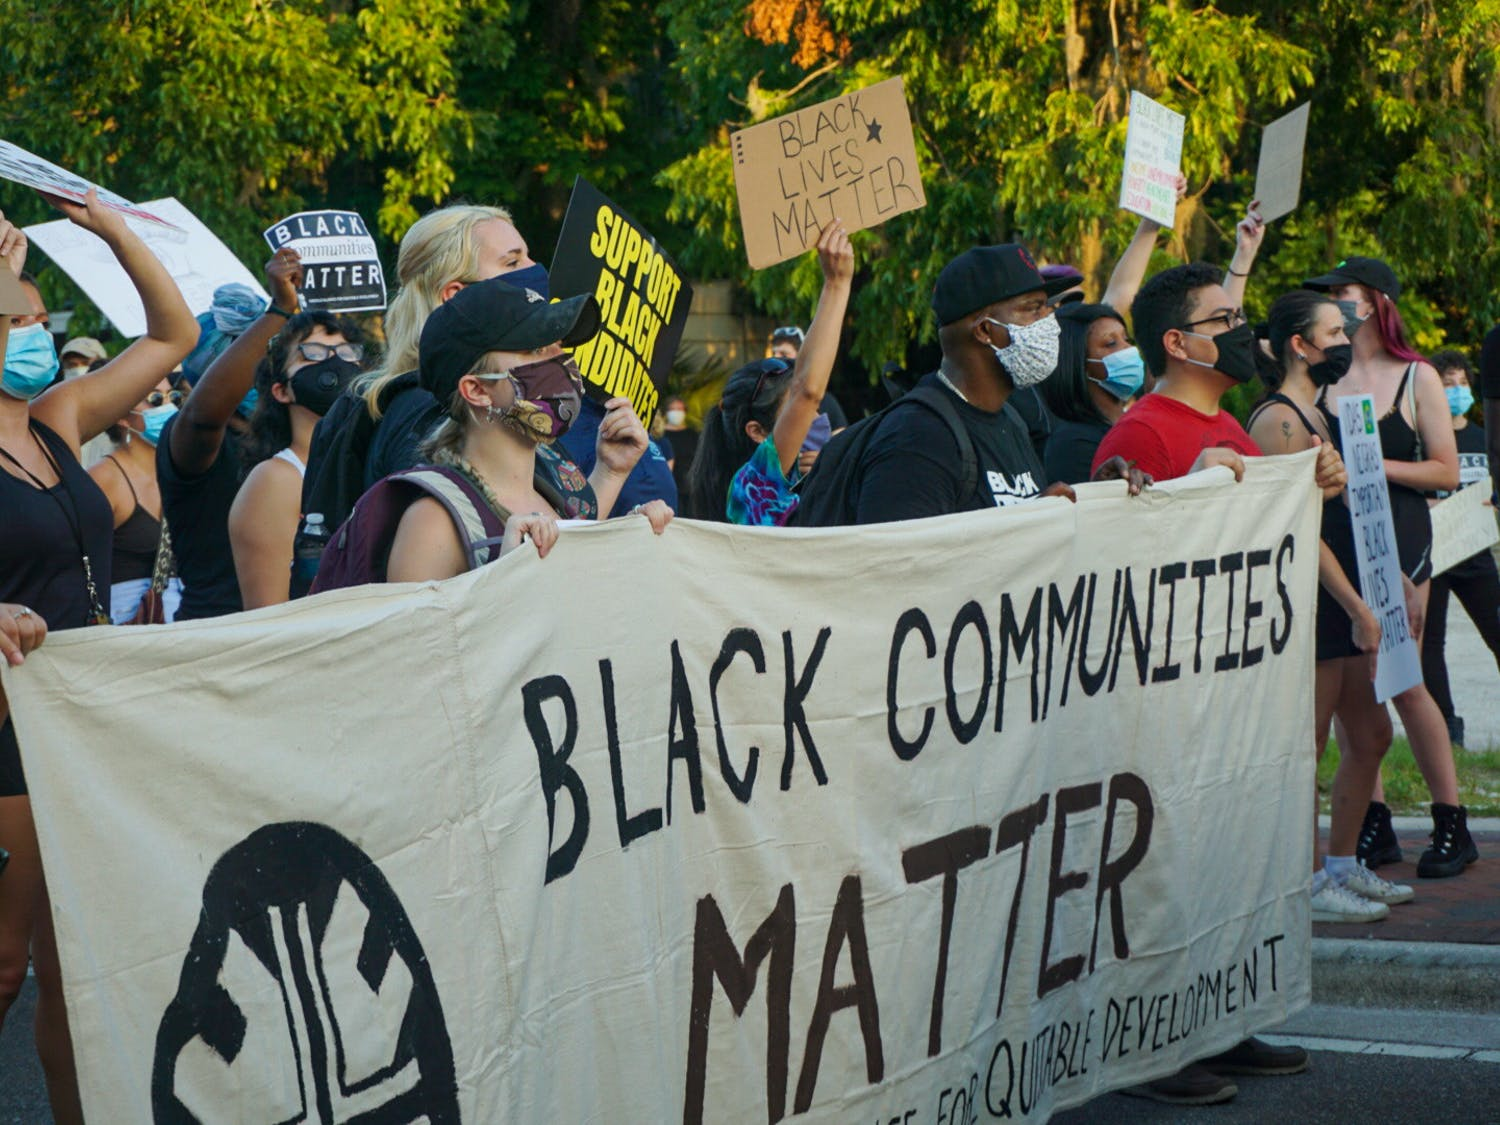 Protestors march at a demonstration against building luxury student apartments on land located in in a historically Black community in Gainesville Thursday, June 18, 2020. The protest drew more than 300 people.